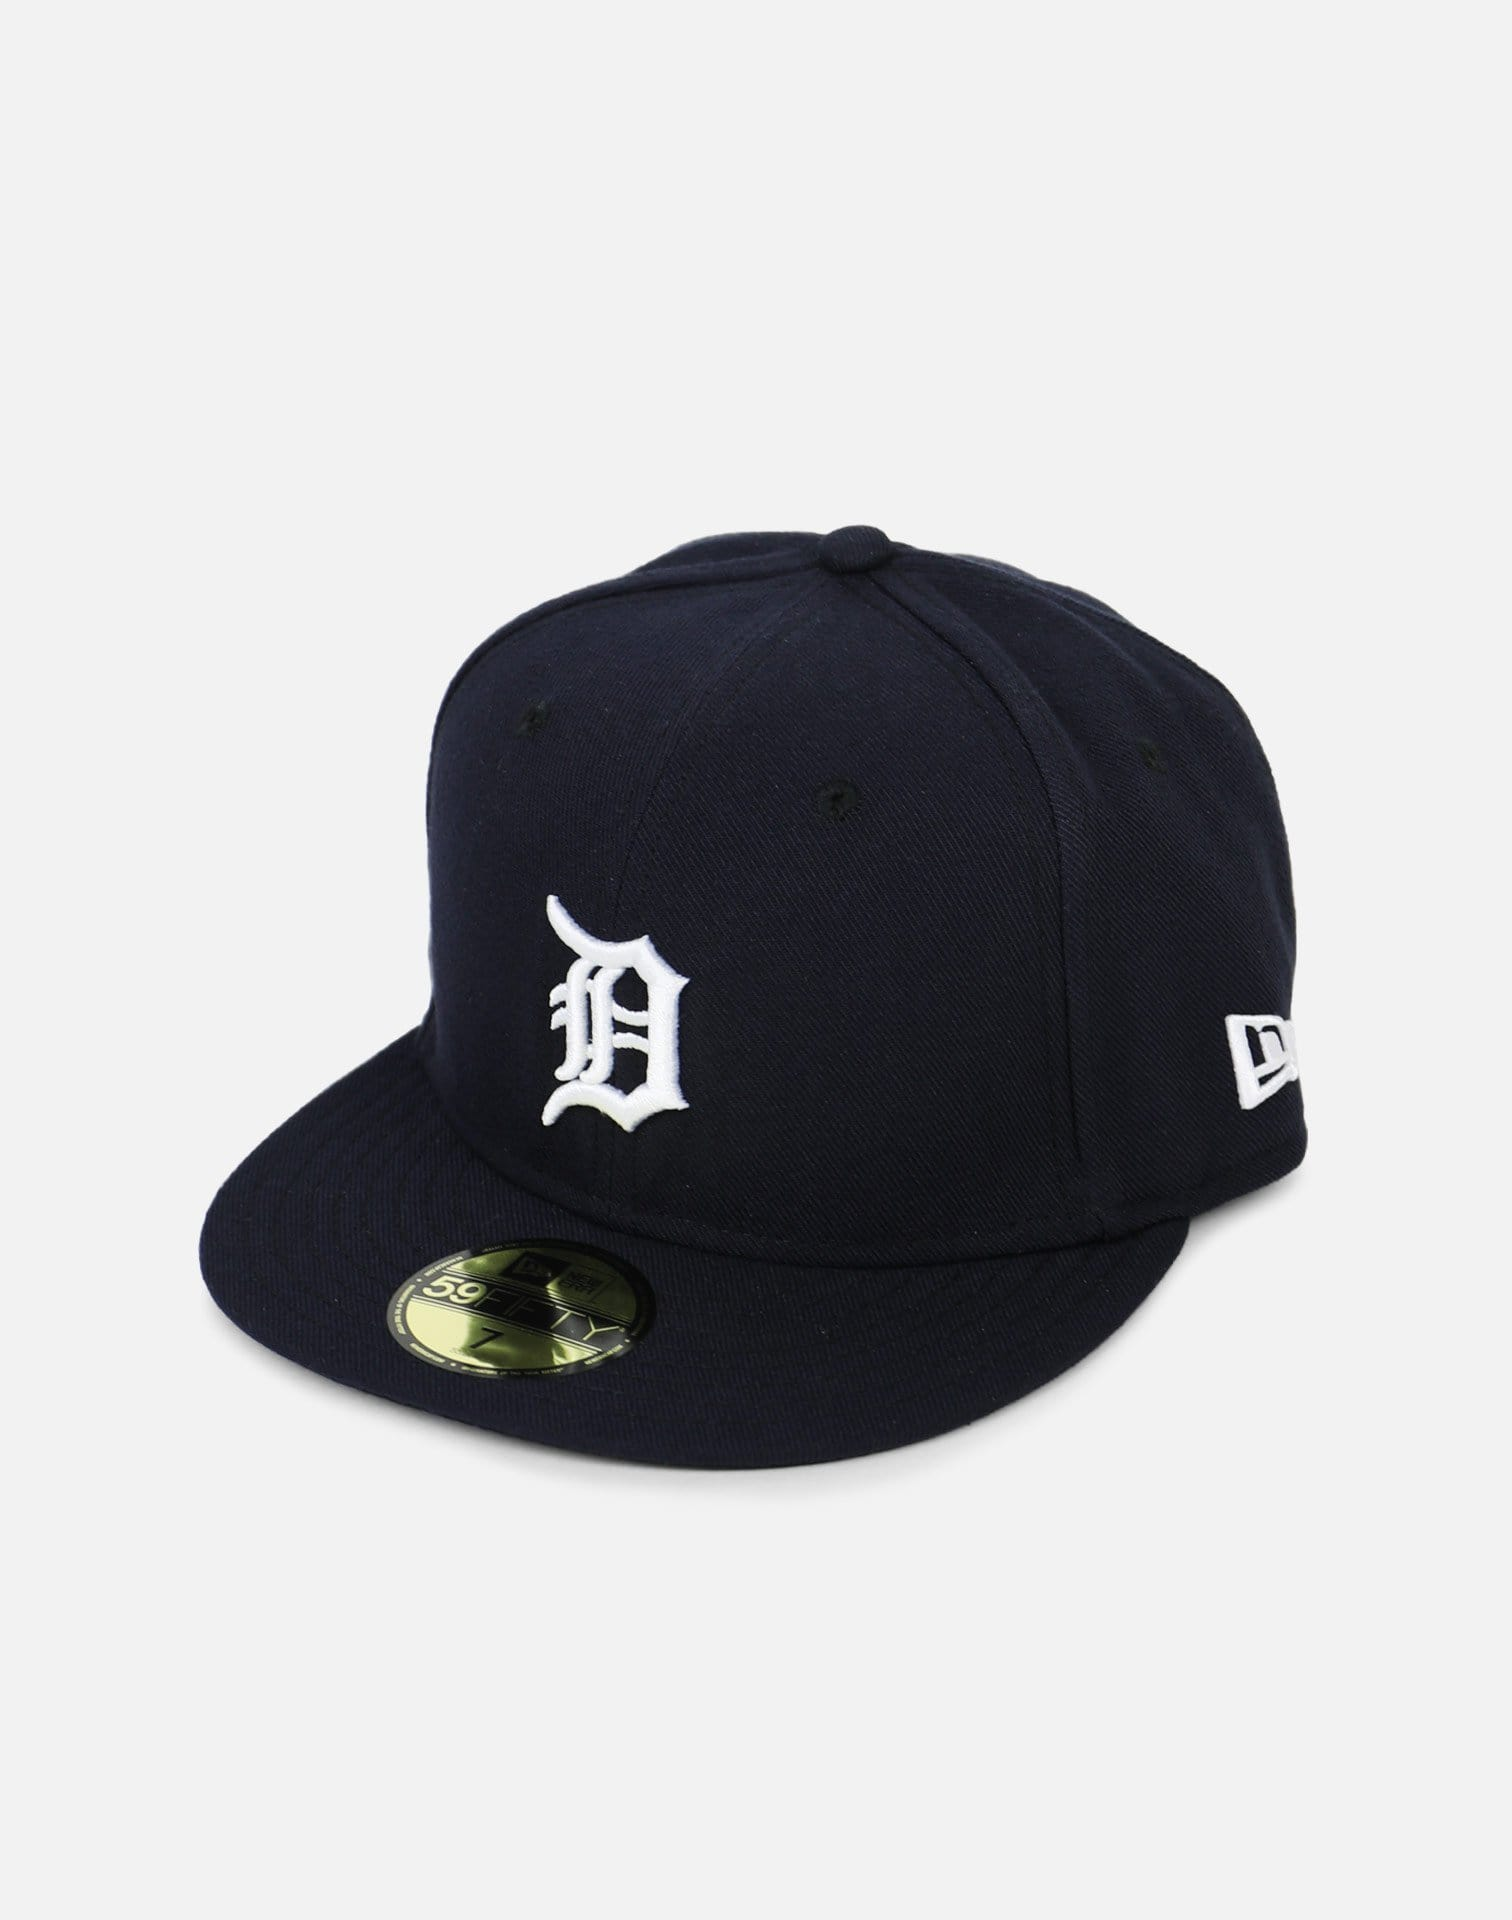 New Era Detroit Tigers Authentic Fitted Hat (Navy)